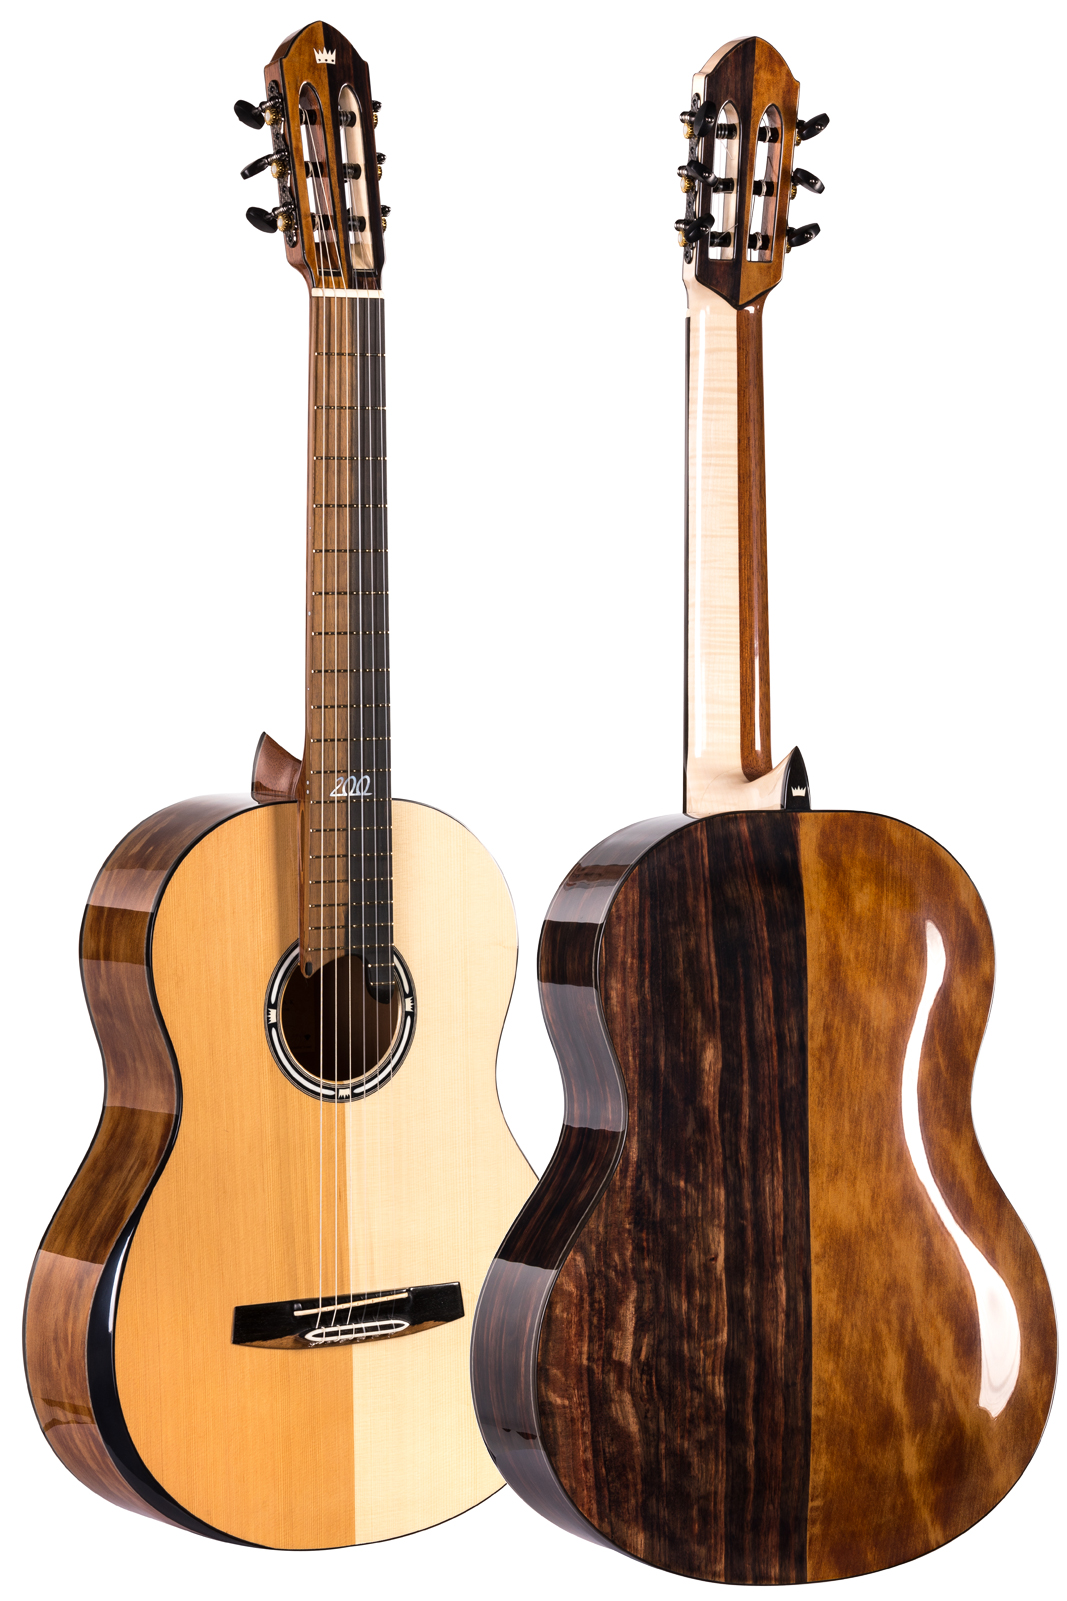 Turkowiak Anniversary Guitar no. 200 - Front and Back Photo